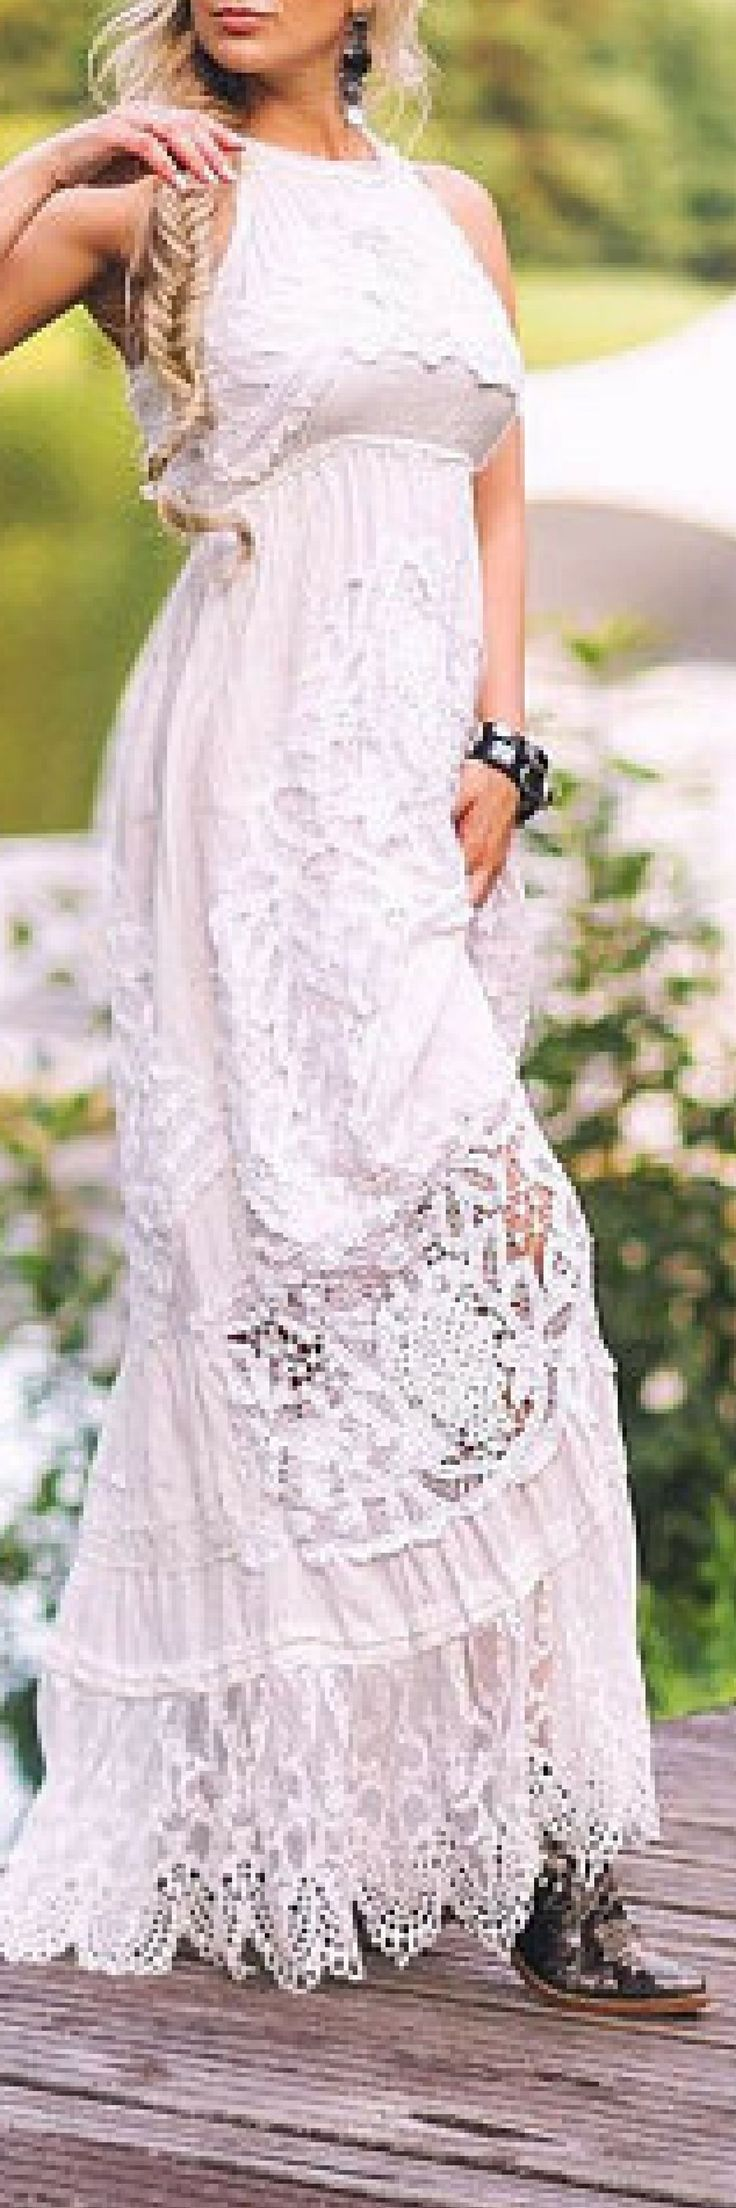 Boho beach wedding dress,  vintage ivory cotton lace wedding dress, country wedding dress, rustic  wedding dress, Cowboy wedding dress, Wedding dresses, Wedding ideas. #weddingdresses #ad #weddingideas